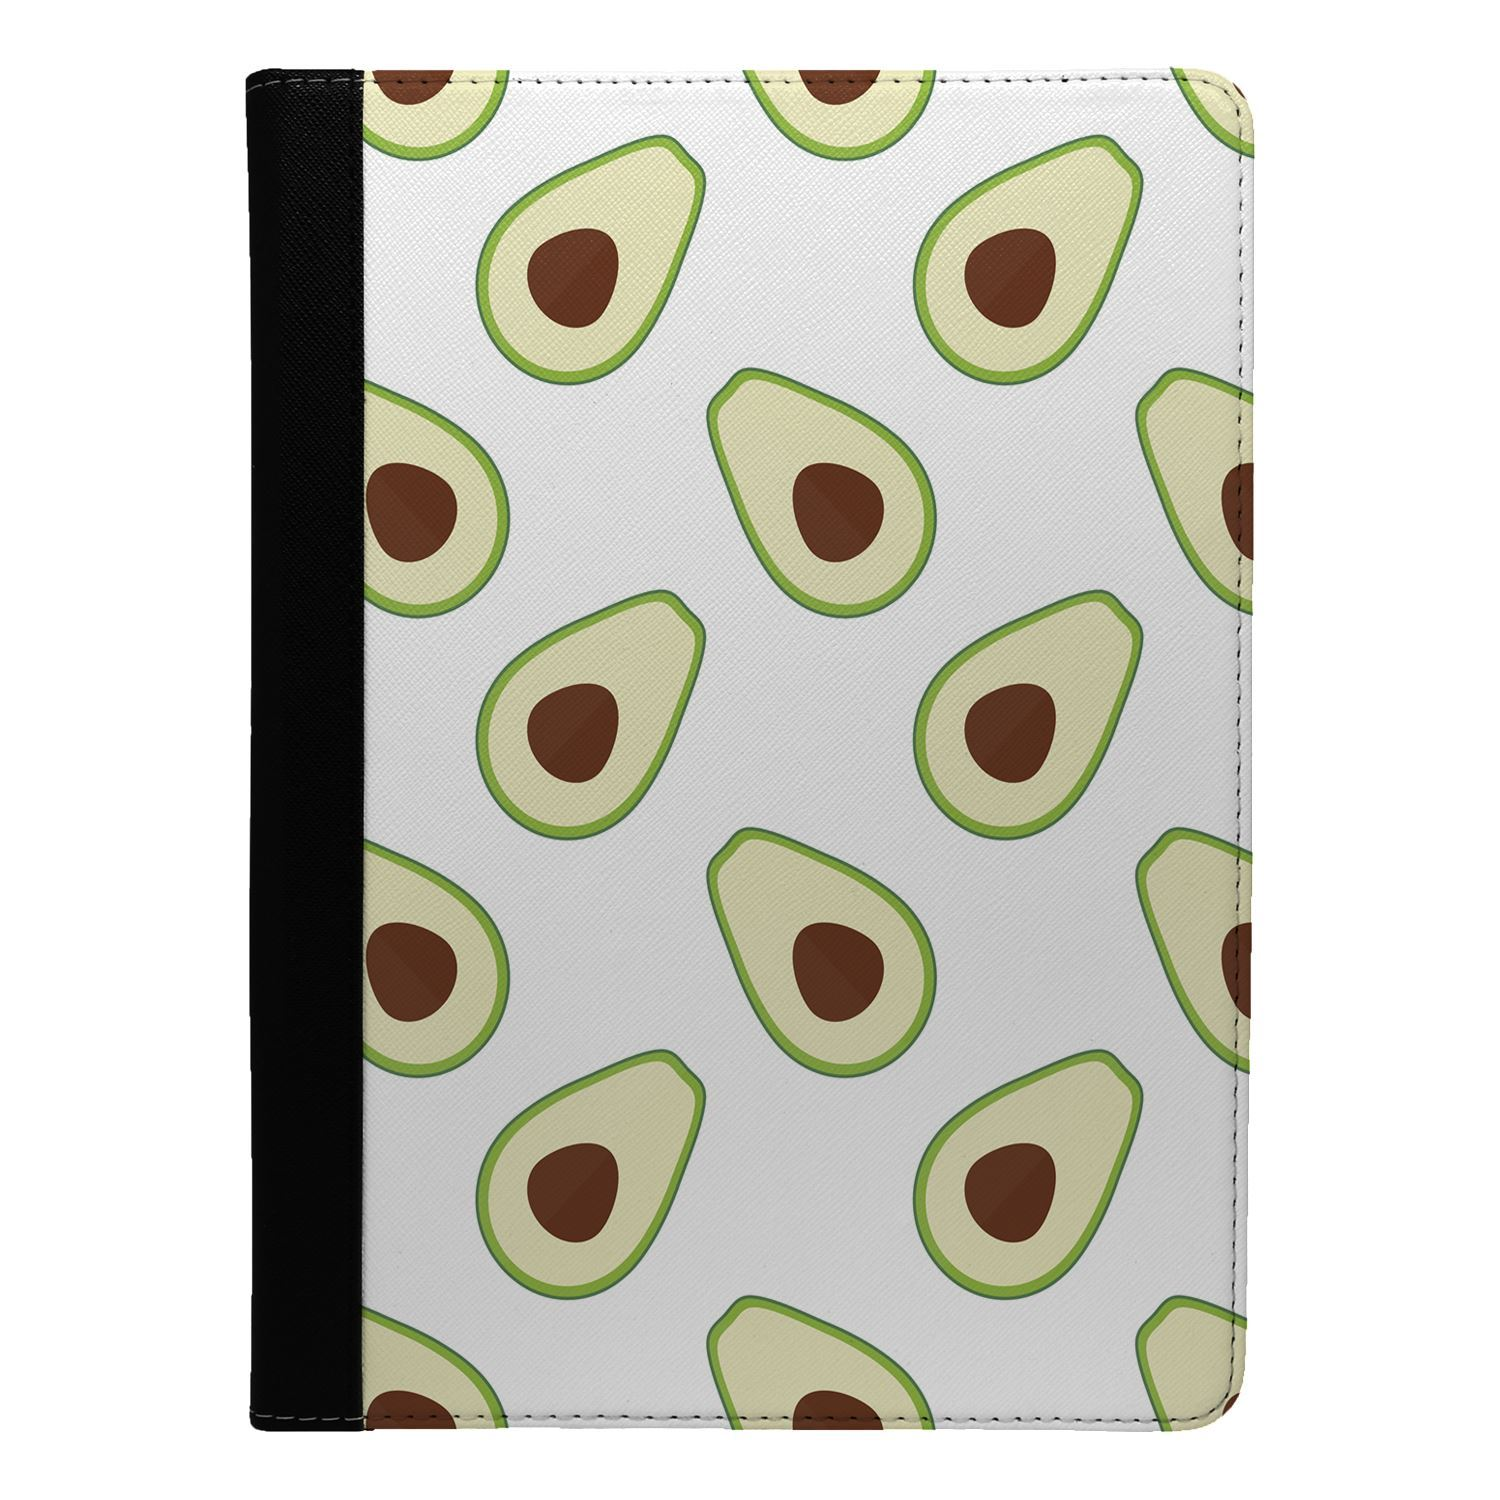 Avocados-Verde-Patron-Funda-Libro-para-Apple-Ipad-S906